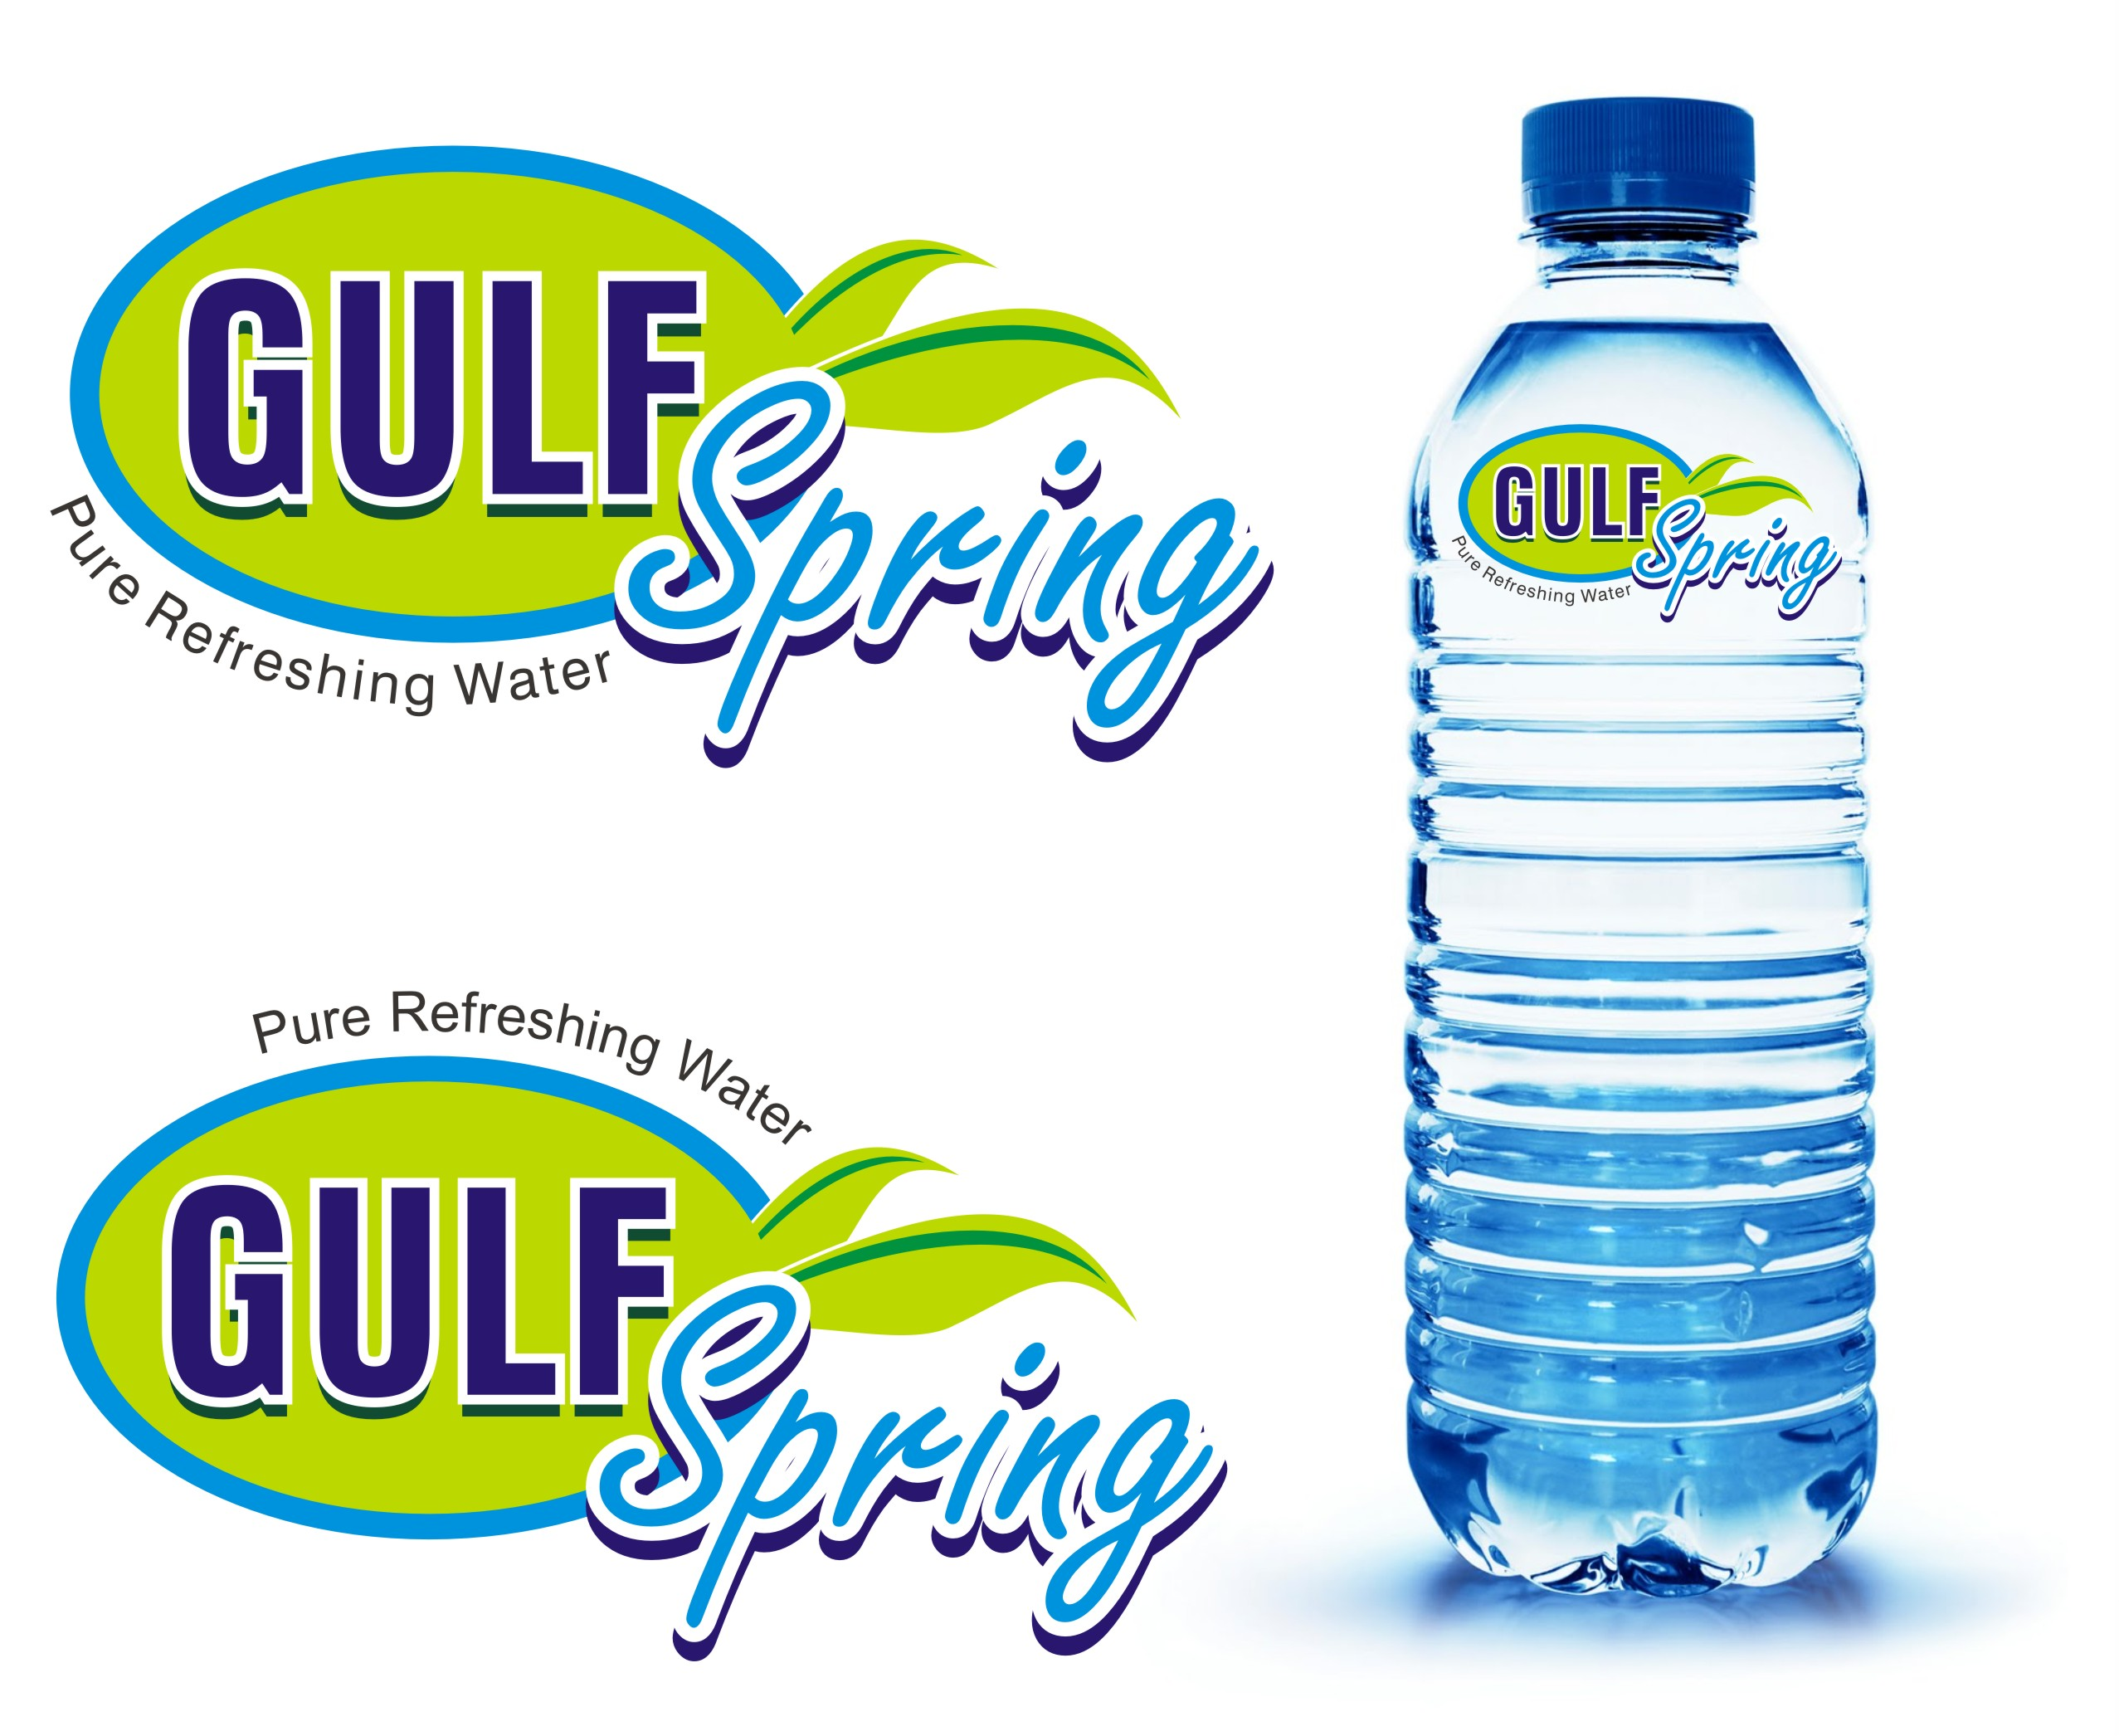 Logo Design by Mahida Kirit Chandrasinh - Entry No. 76 in the Logo Design Contest Inspiring Logo Design for Gulf Spring.